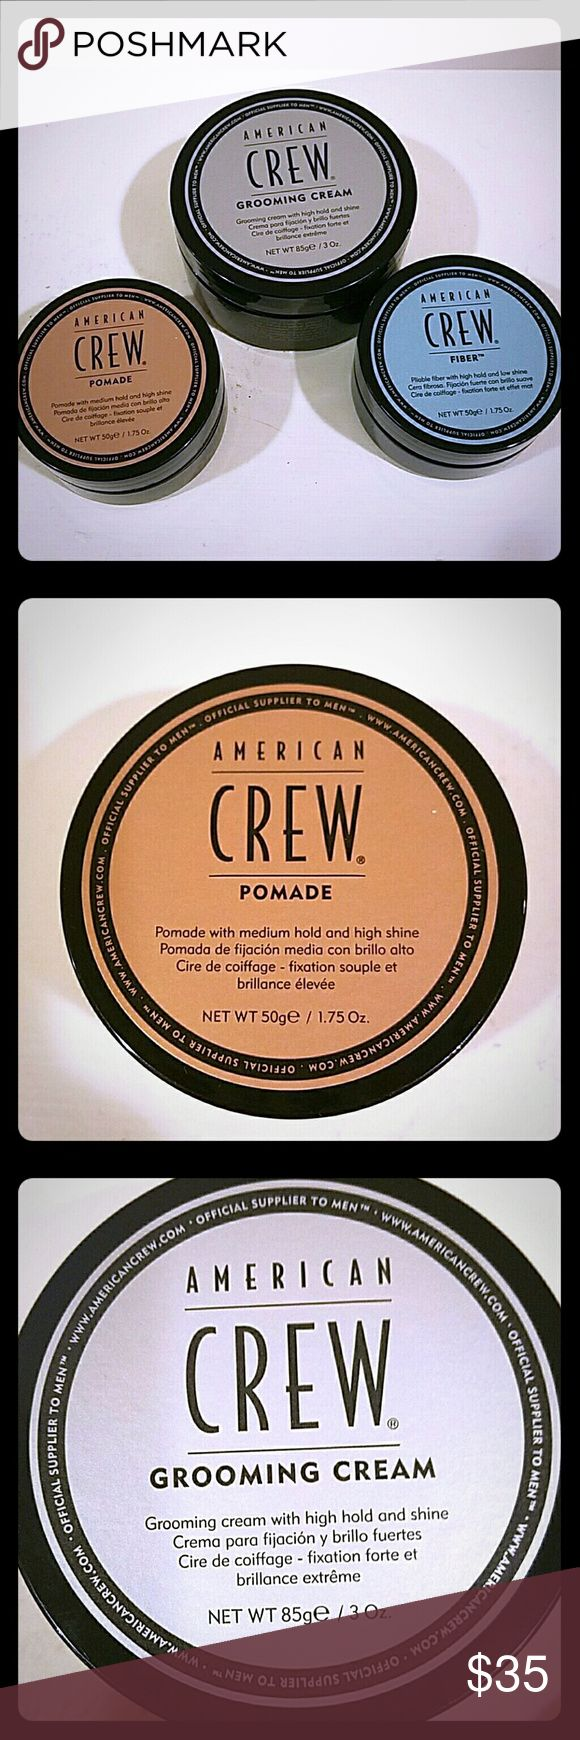 NEW American Crew Bundle for Men NEW UNOPENED AMERICAN CREW BUNDLE FOR MEN American Crew grooming cream 3oz American Crew Pomade 1.75 oz American Crew Fiber 1.75 oz This bundle is valed close to 60 and im selling it for half that price. American crew Other